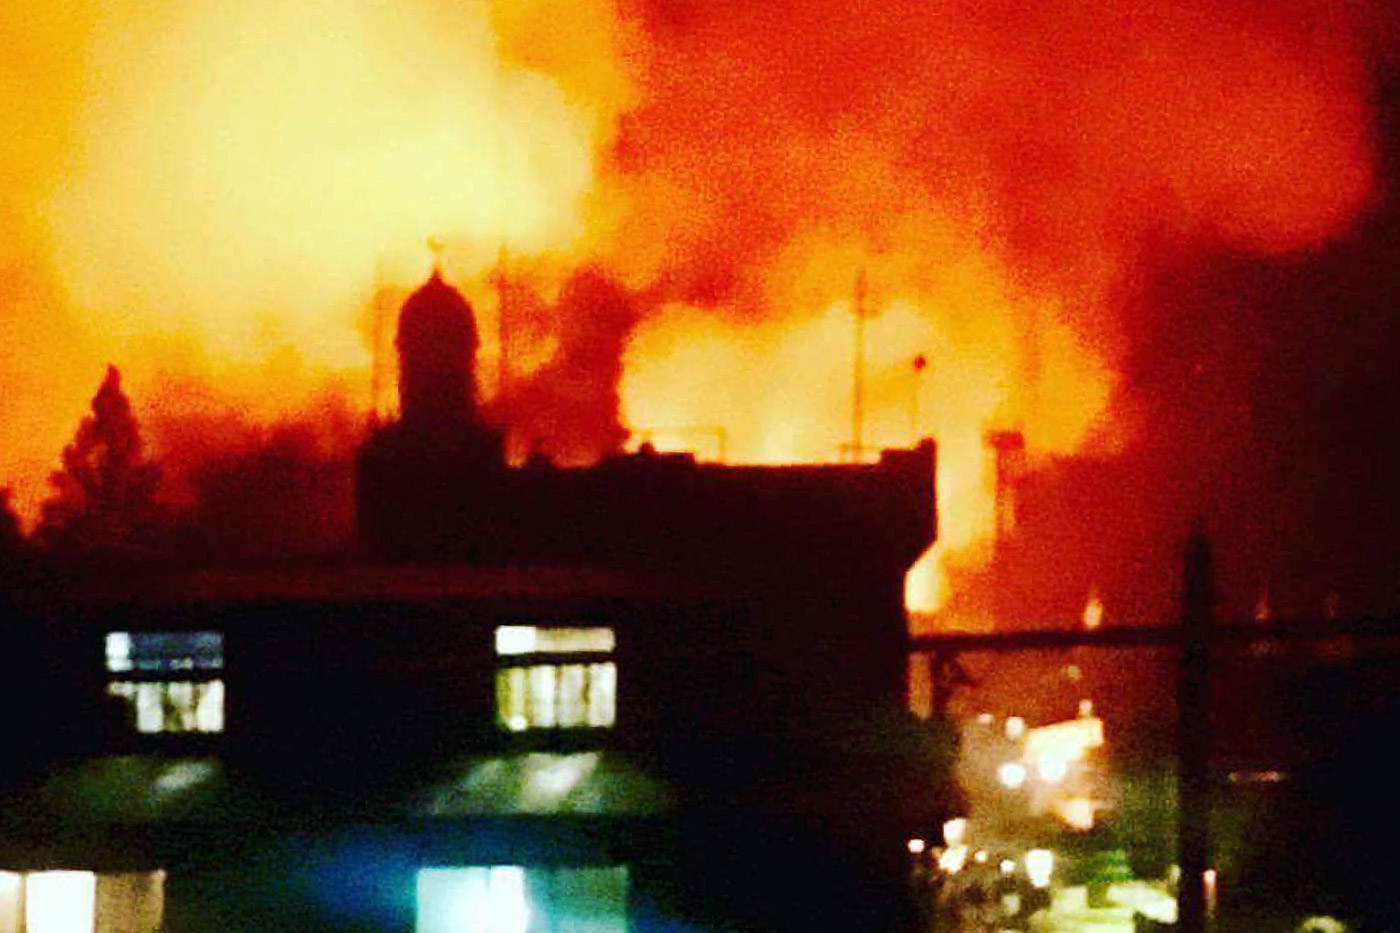 MARAWI BURNING. 3 separate fires broke out enveloping the City Jail, Dansalan College, and Saint Mary's Church on Tuesday night. Photo from @du_kartoffel